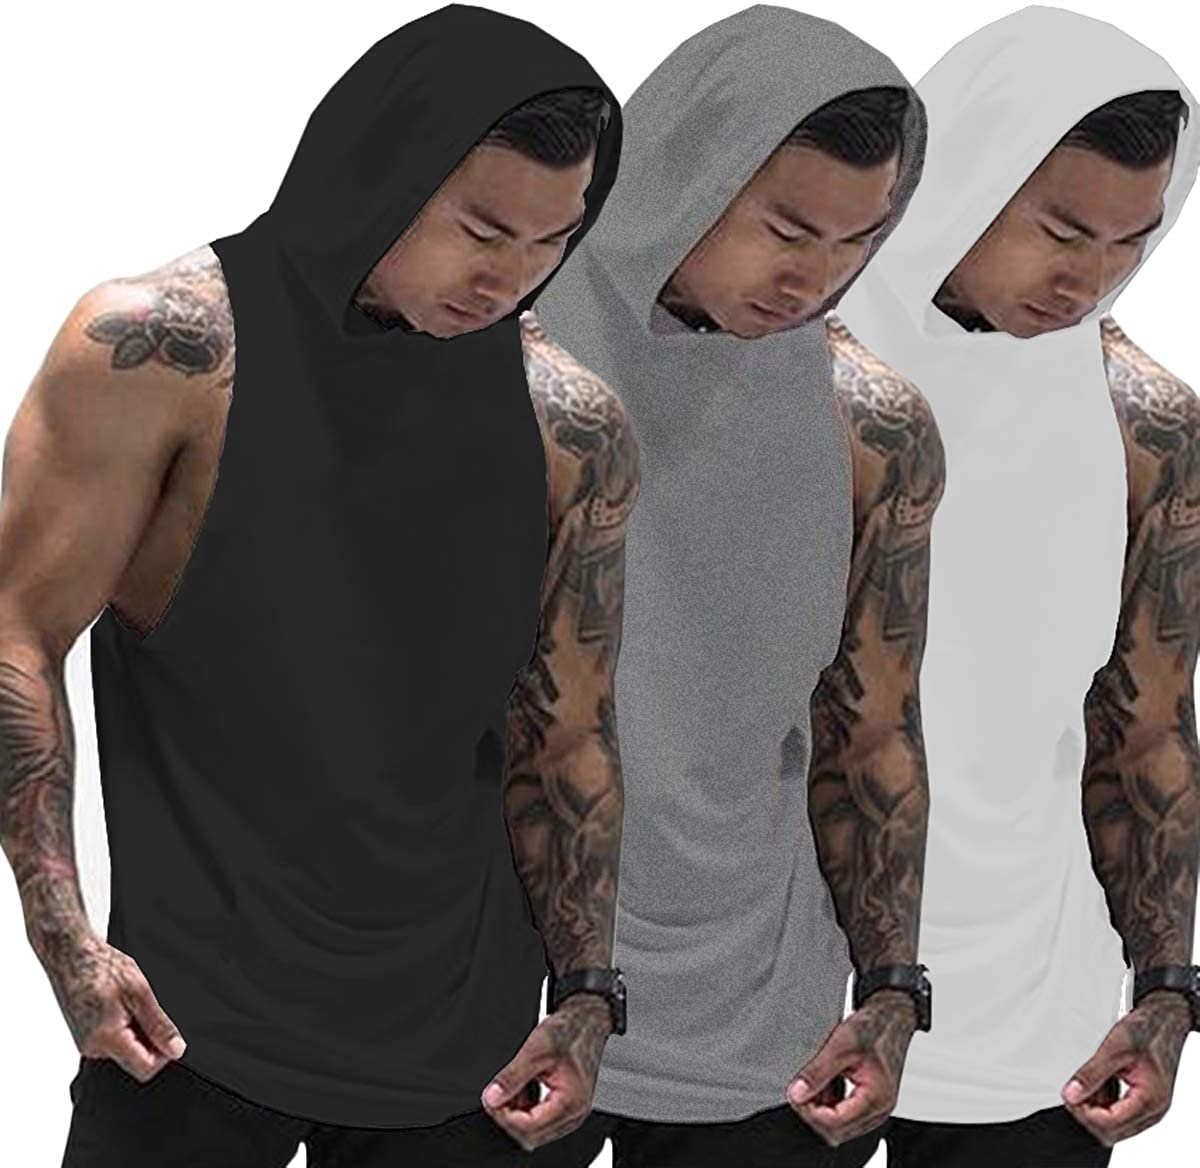 Muscle Killer 3 Pack Men's Workout Hooded Tank Tops Bodybuilding Muscle Cut Off T Shirt Sleeveless Gym Hoodies: Clothing